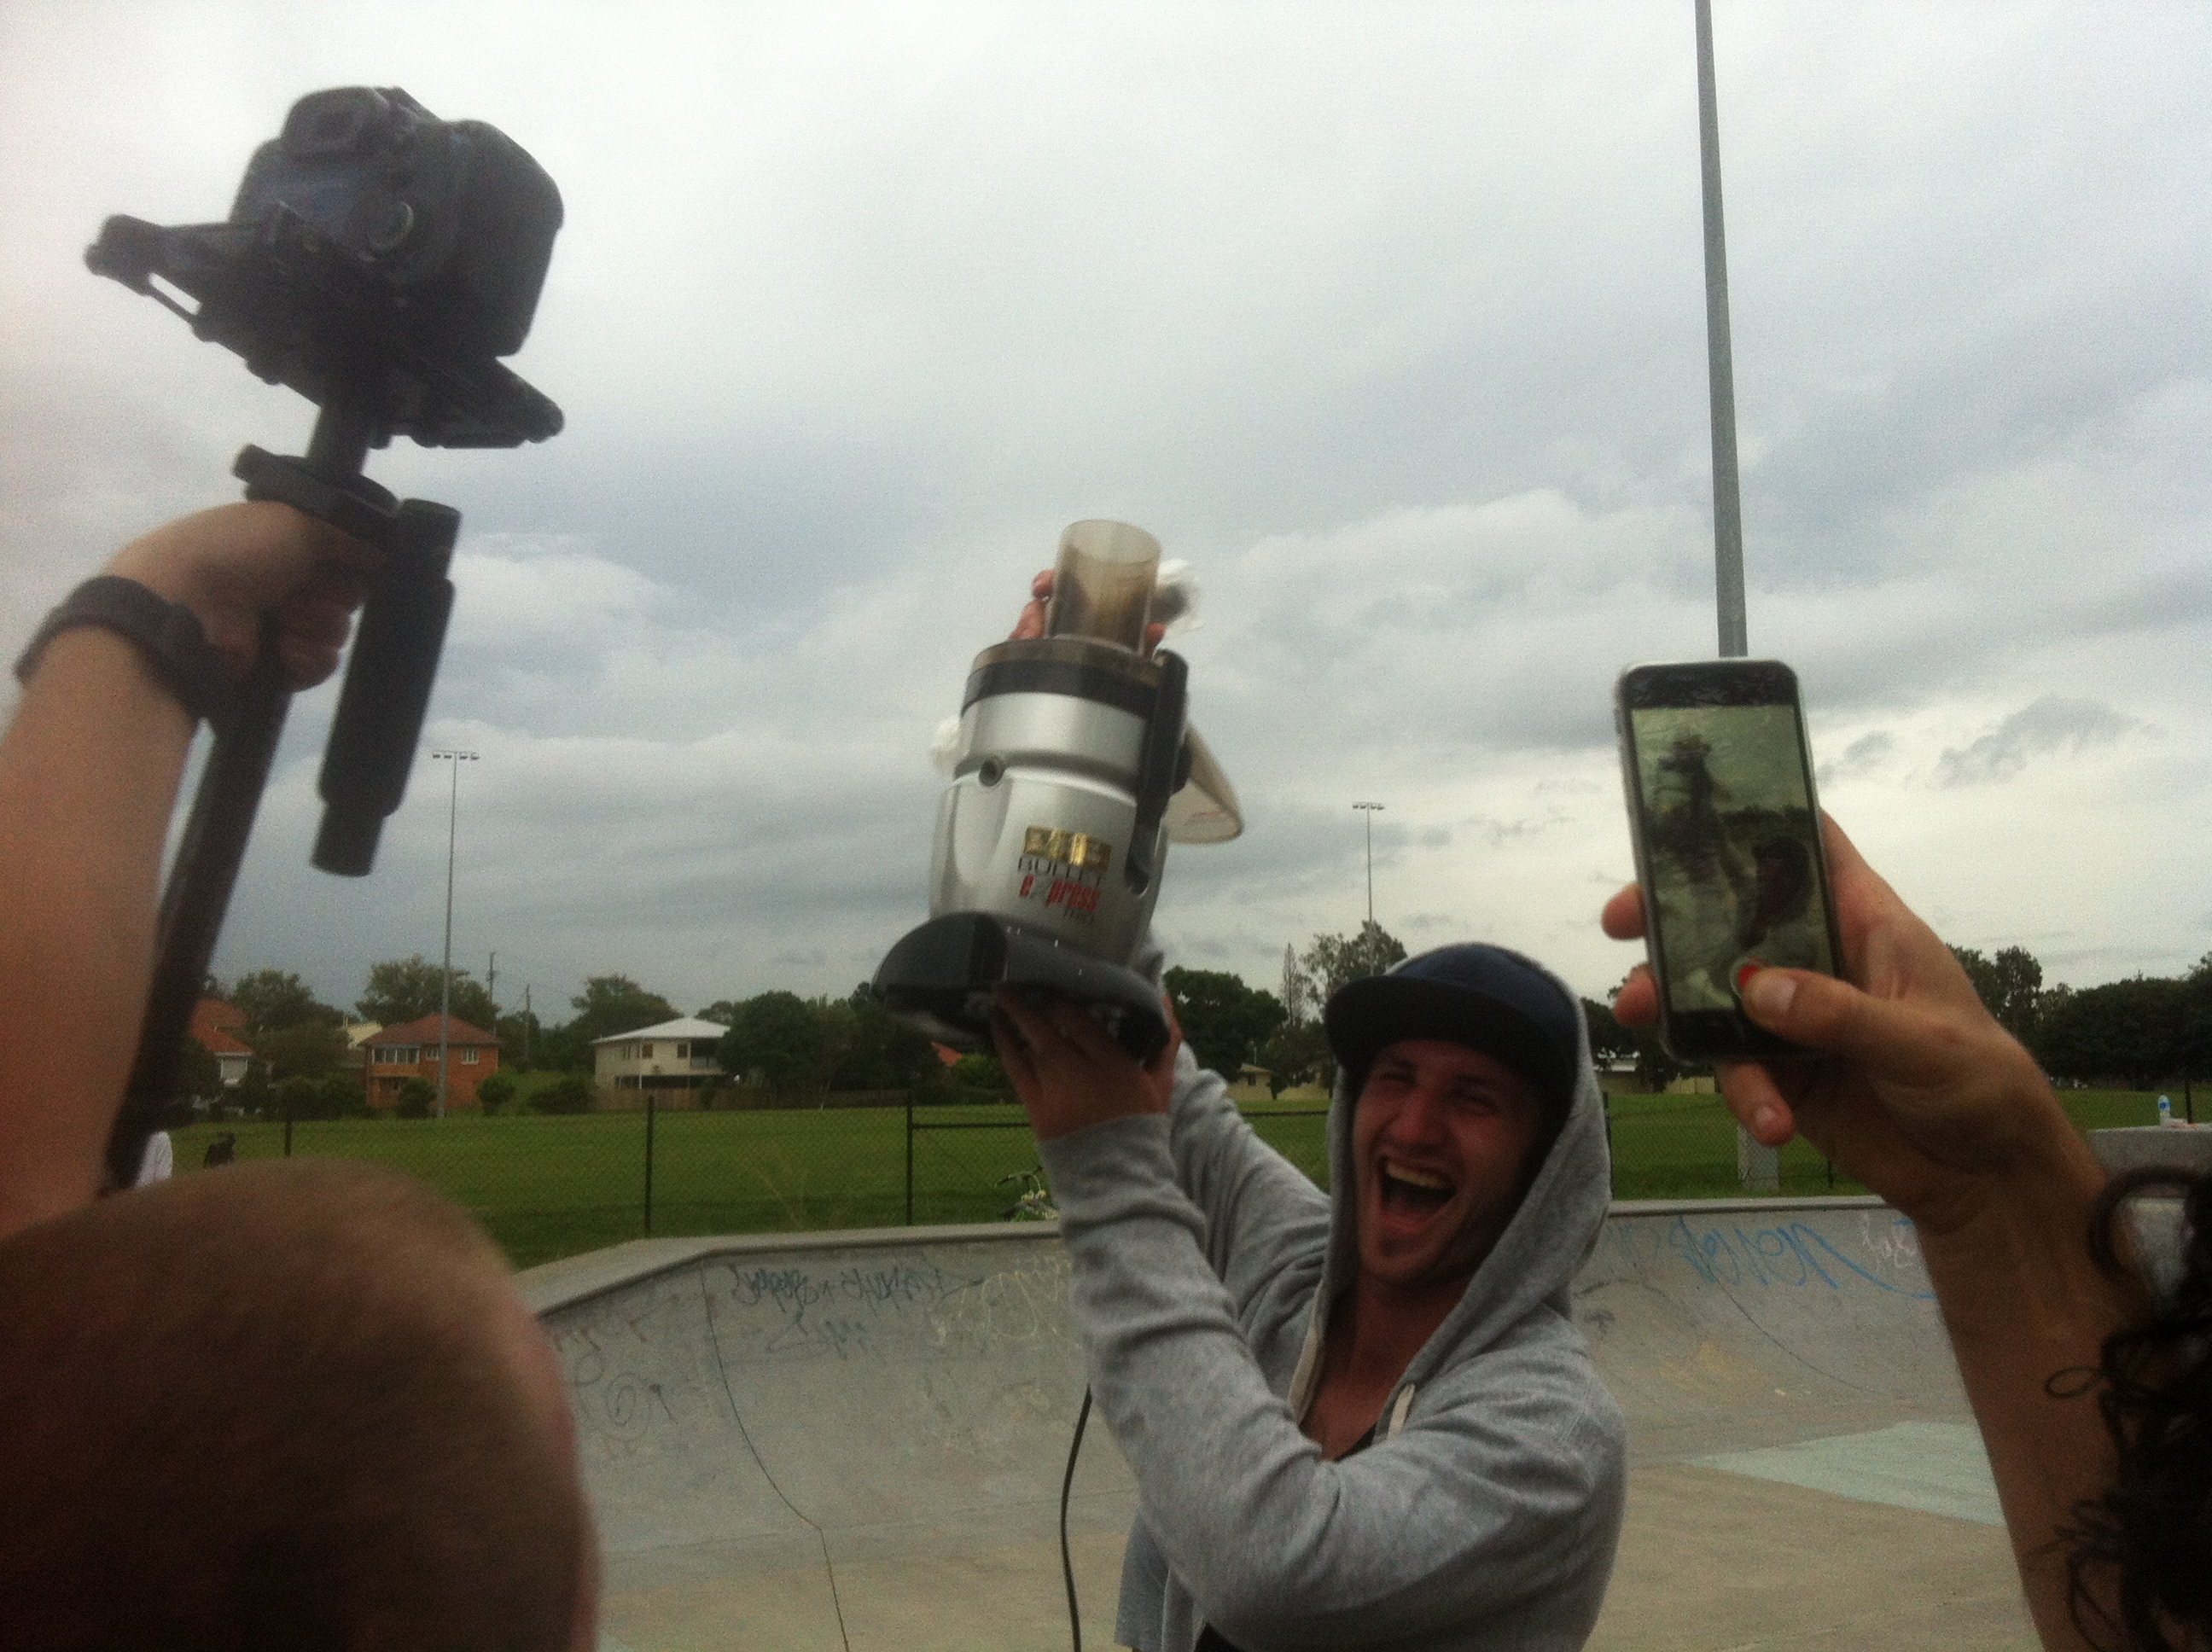 Tom Scofield Best Trick Winner